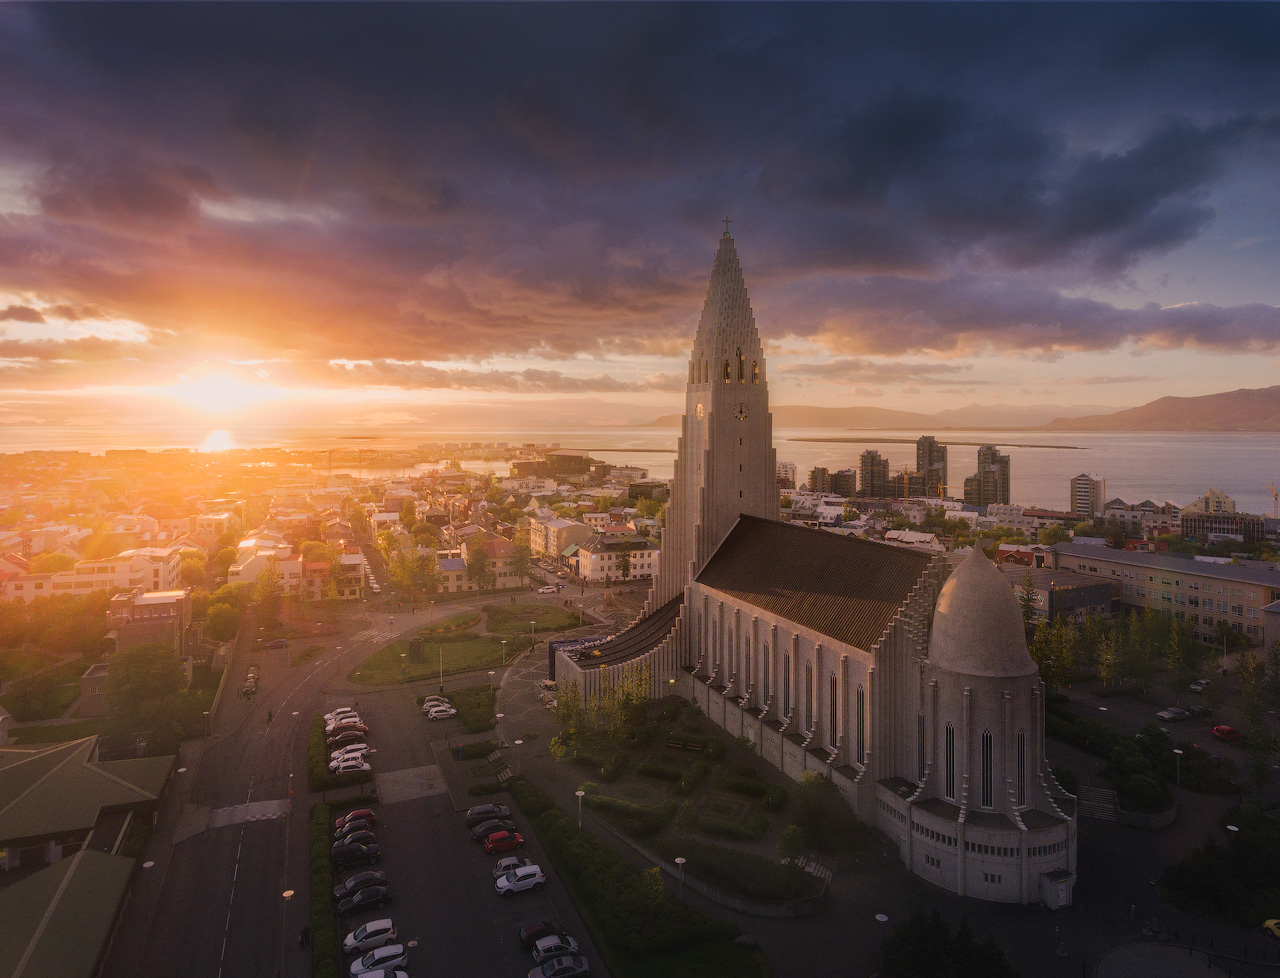 Hallgrímskirkja church is arguably one of the most iconic sights to be seen in the capital Reykjavík; here, you can see it bathed in the warm shades of sunset.